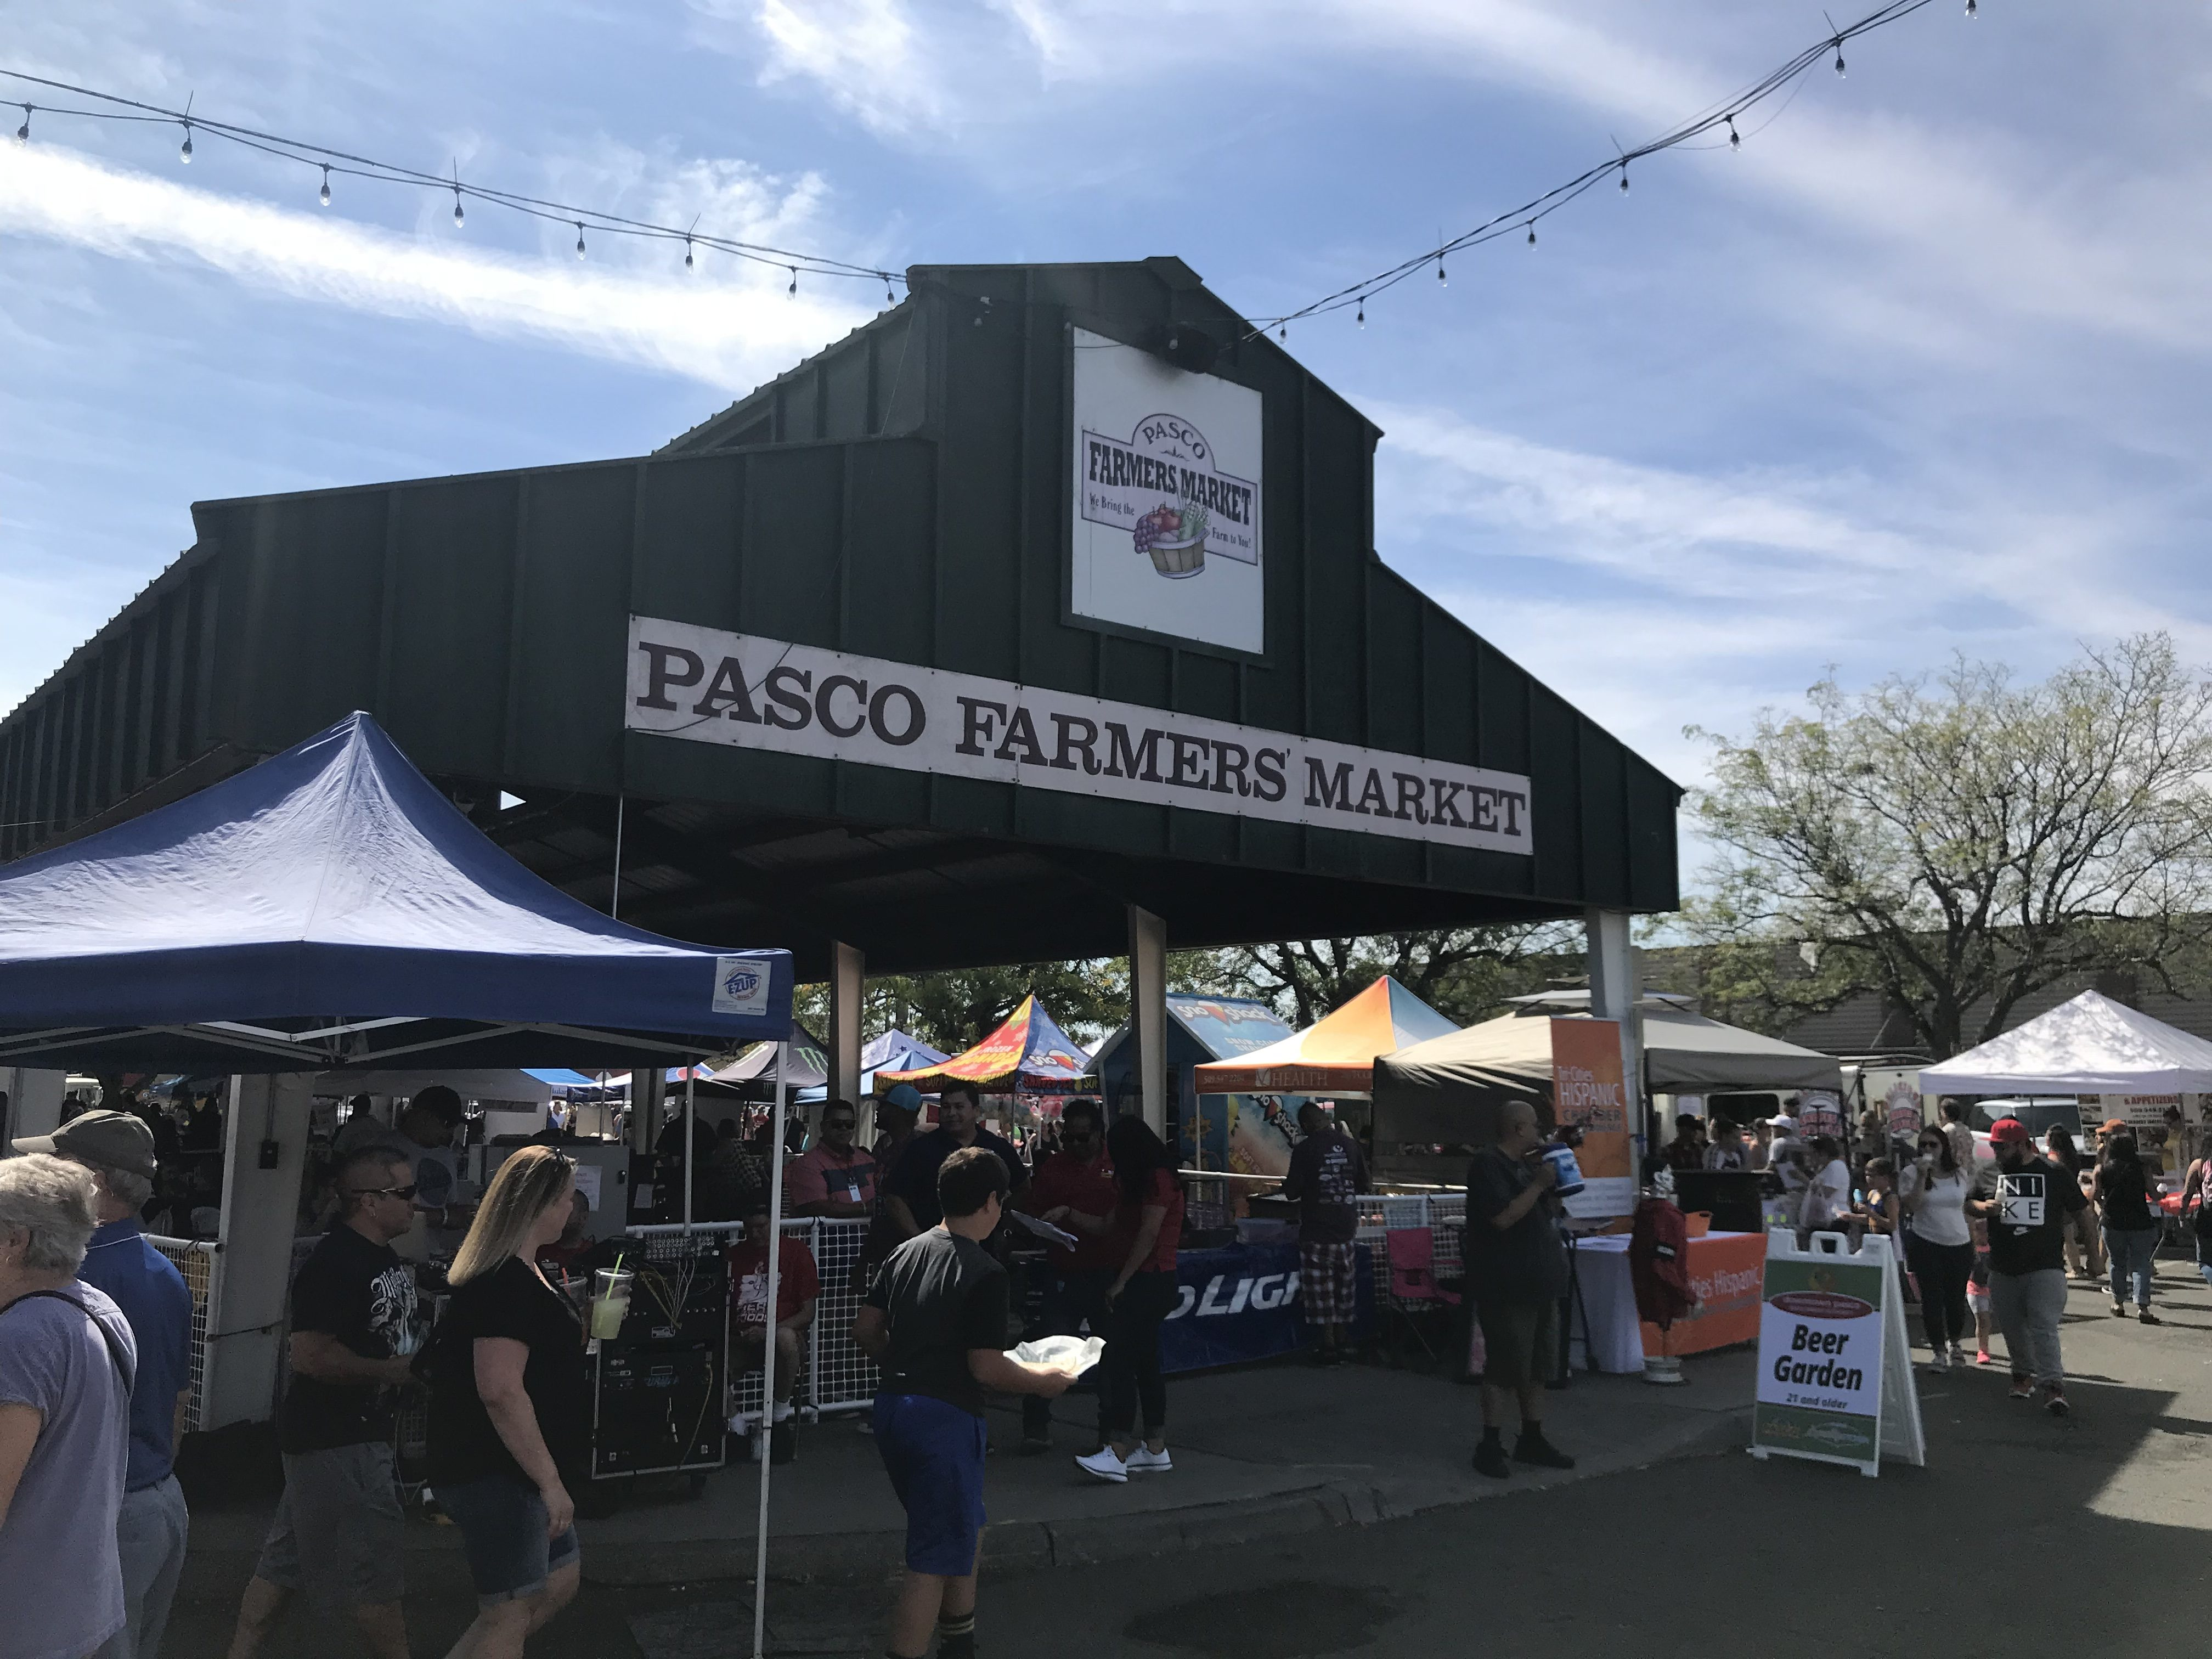 Fiery Food Festival 2018 in Pasco - September 8 2018